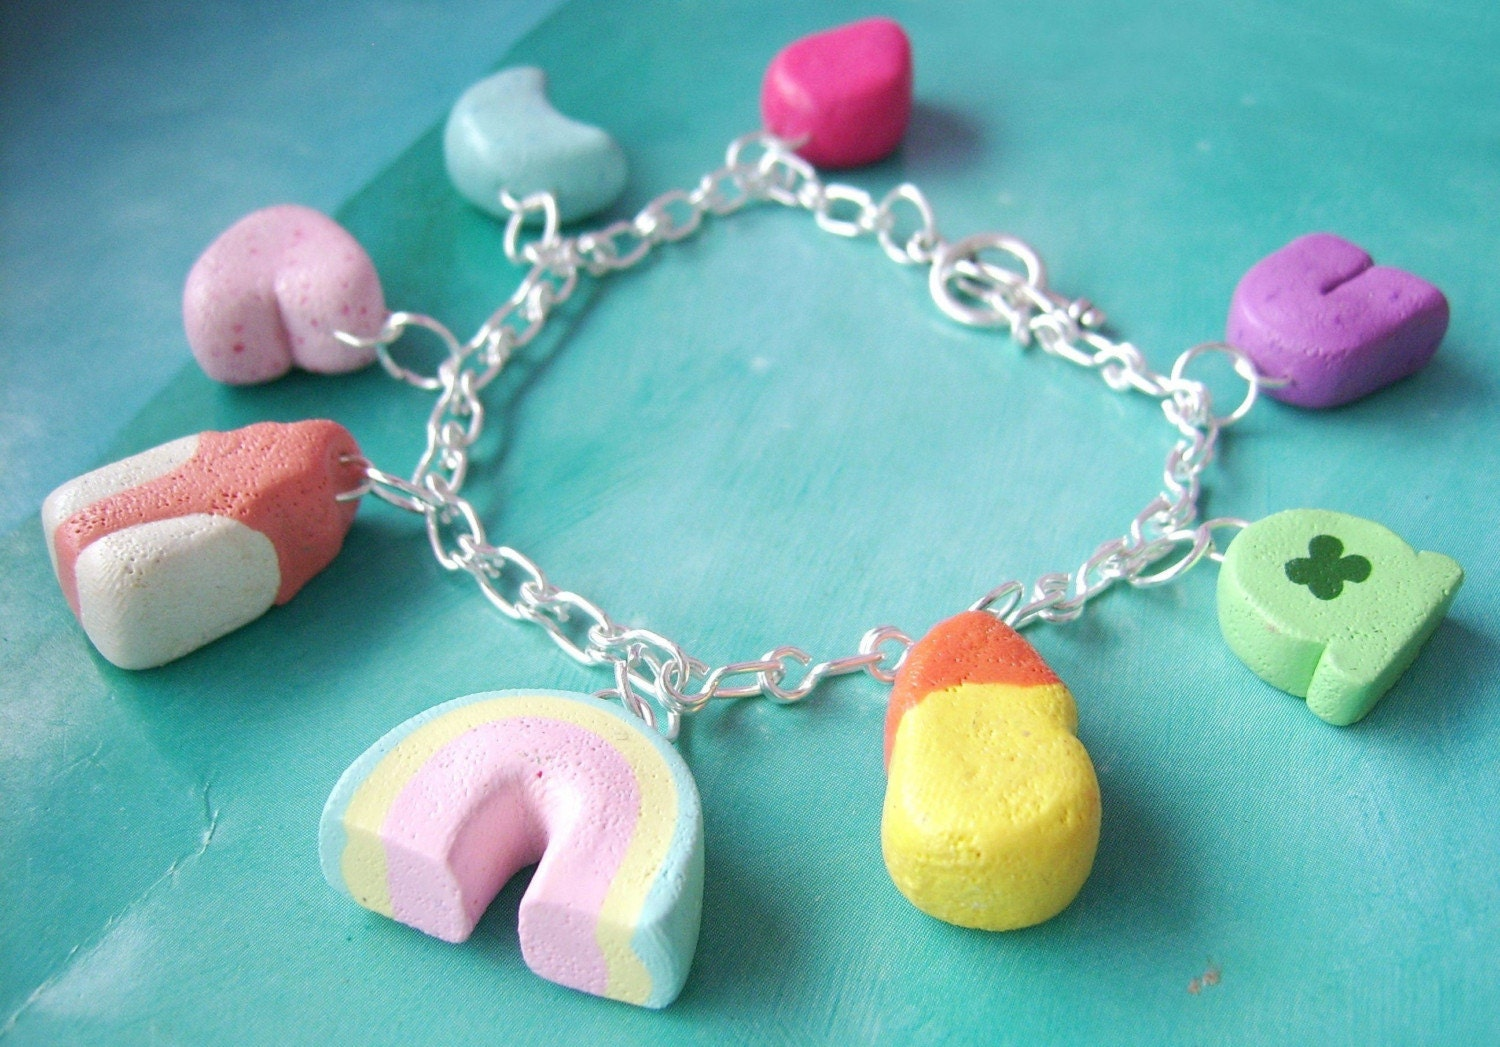 lucky charms protective amulets talismanic jewelry and